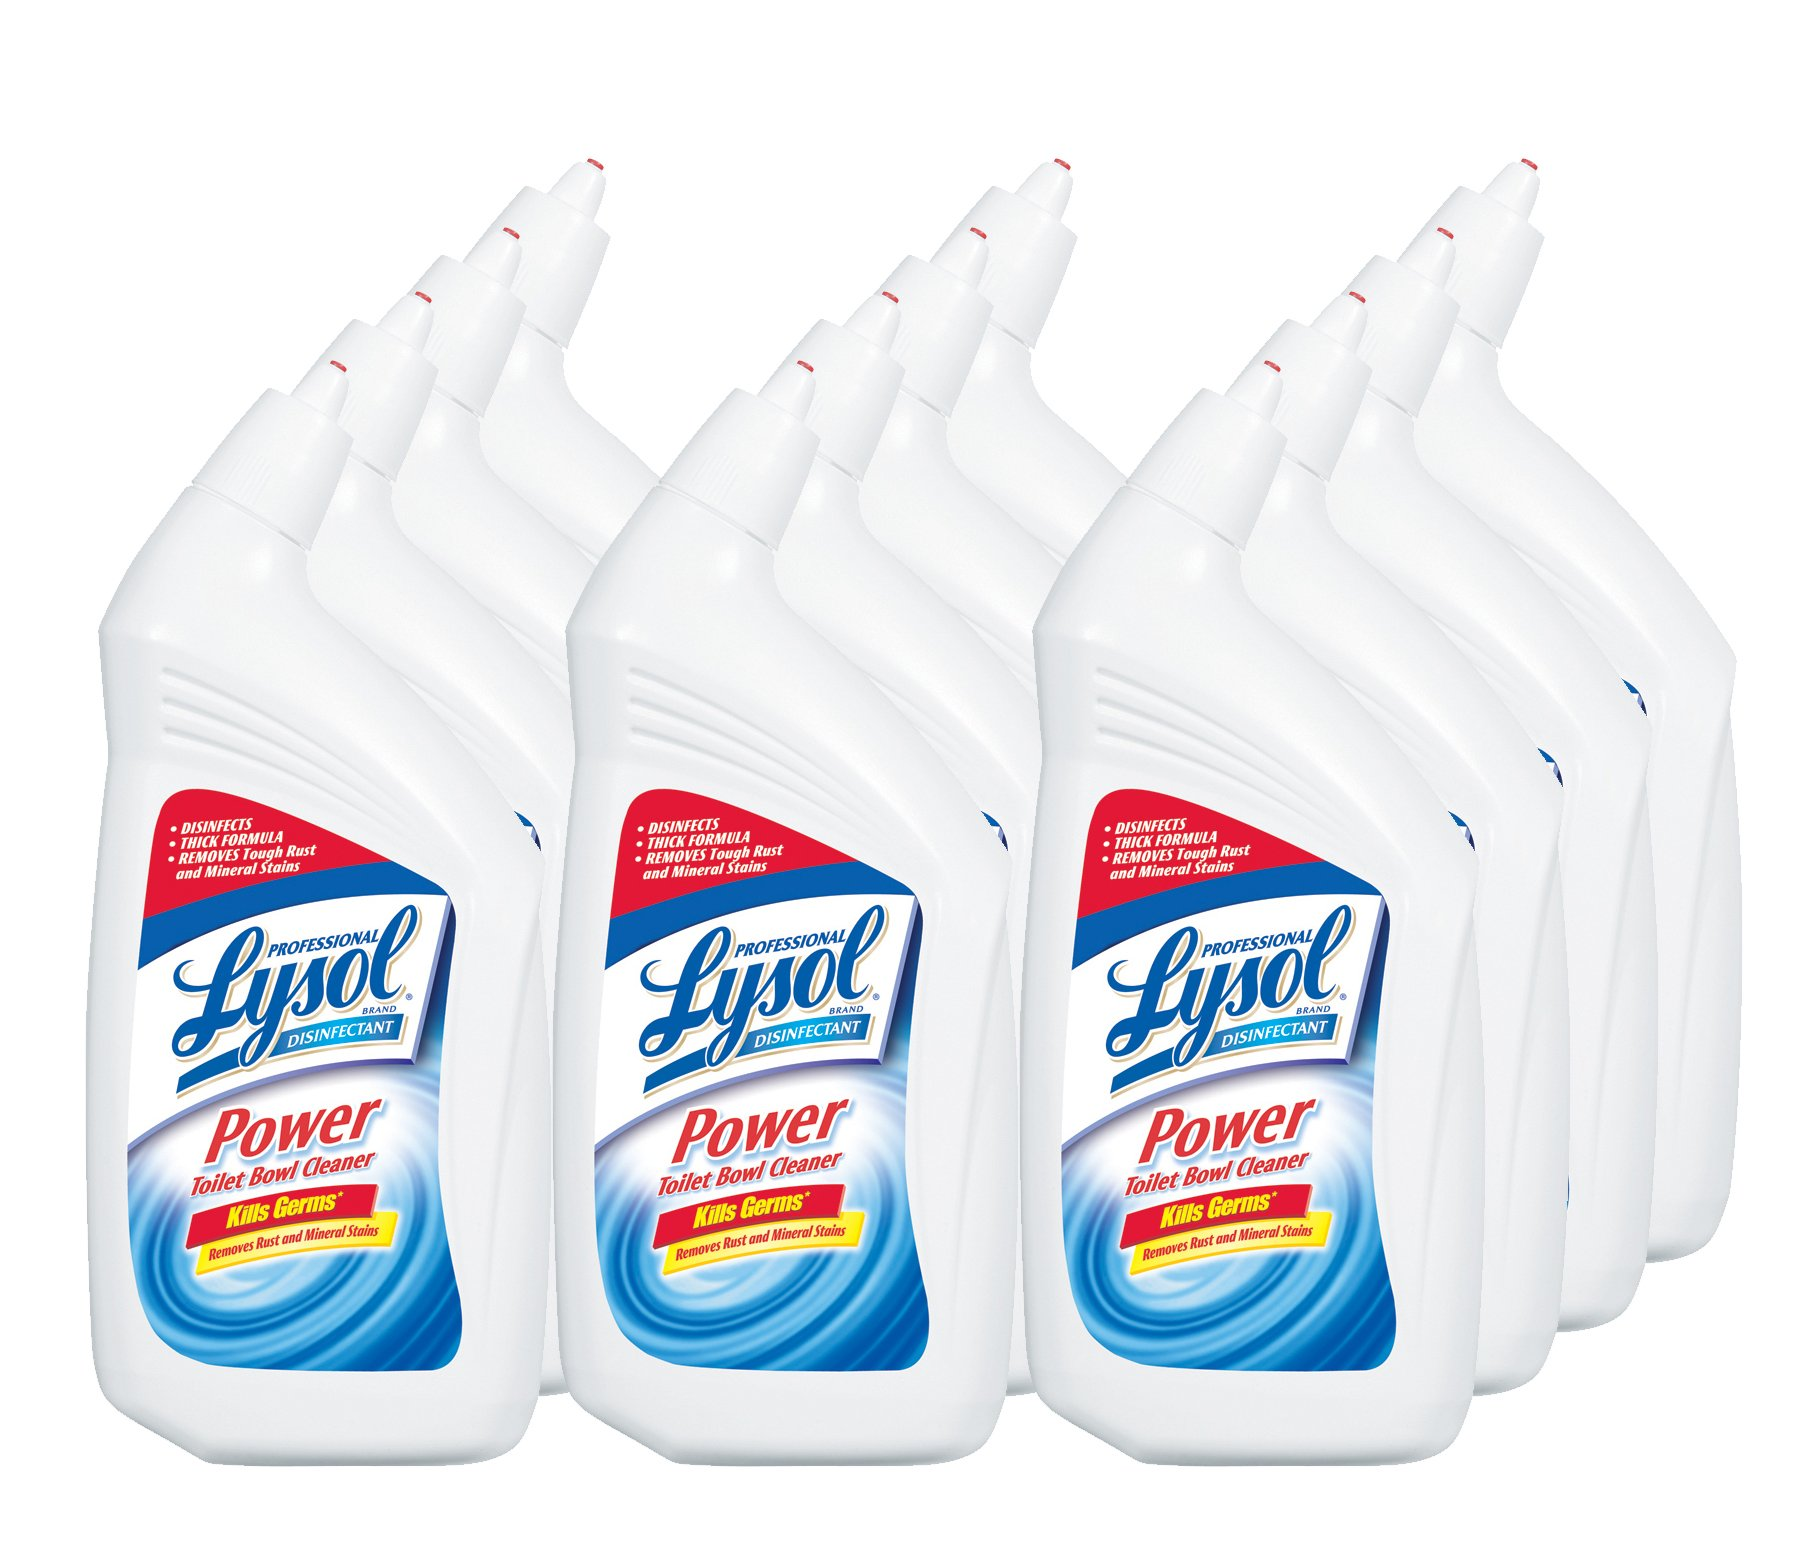 Lysol Professional Disinfectant Ready-To-Use Toilet Bowl Cleaner, 32 Ounce (Pack of 12)